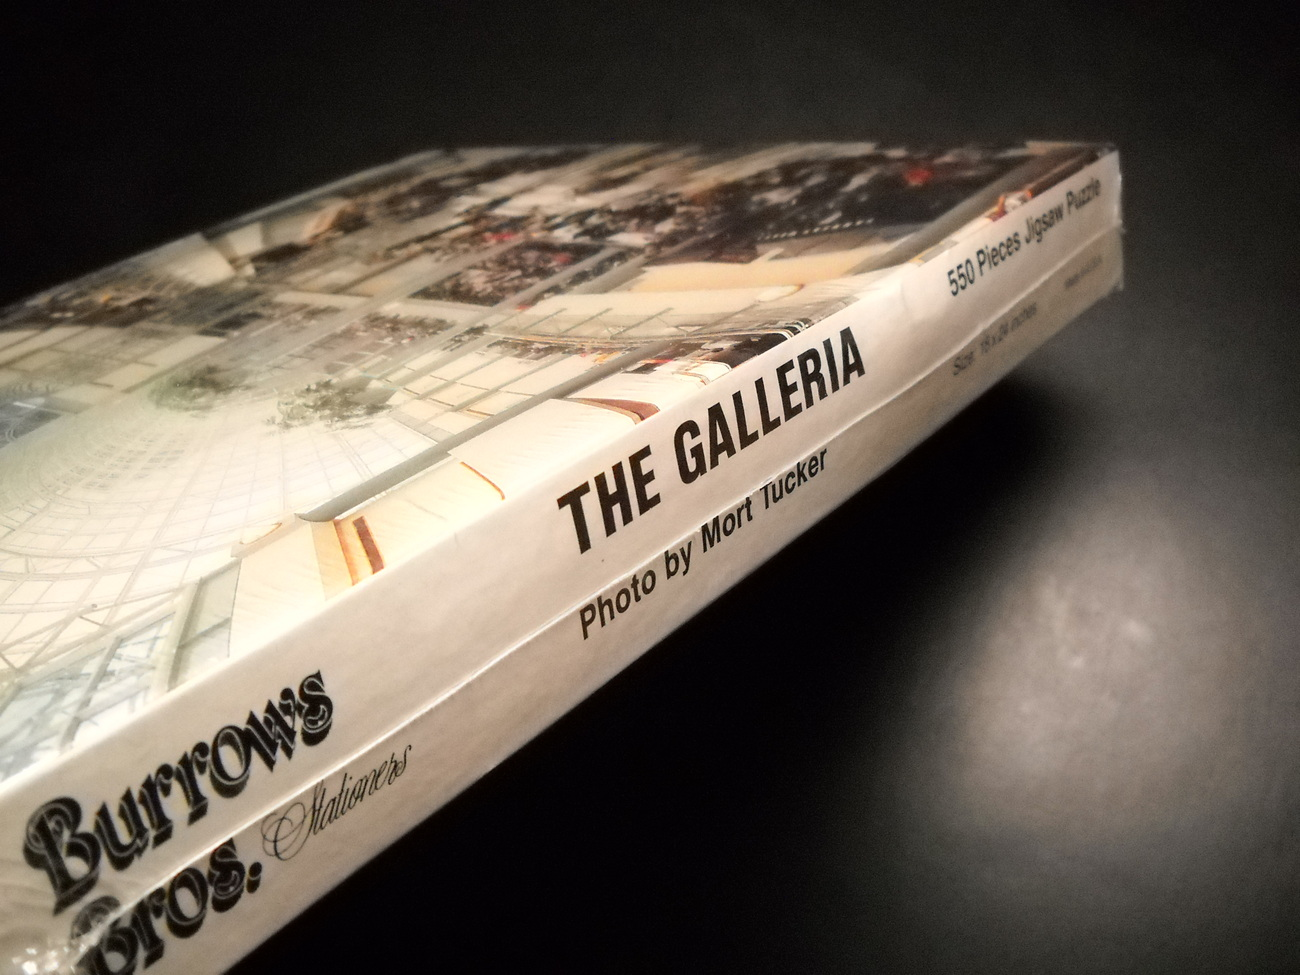 Burrows Bros Jigsaw Puzzle The Galleria Cleveland Mort Tucker Photography Sealed